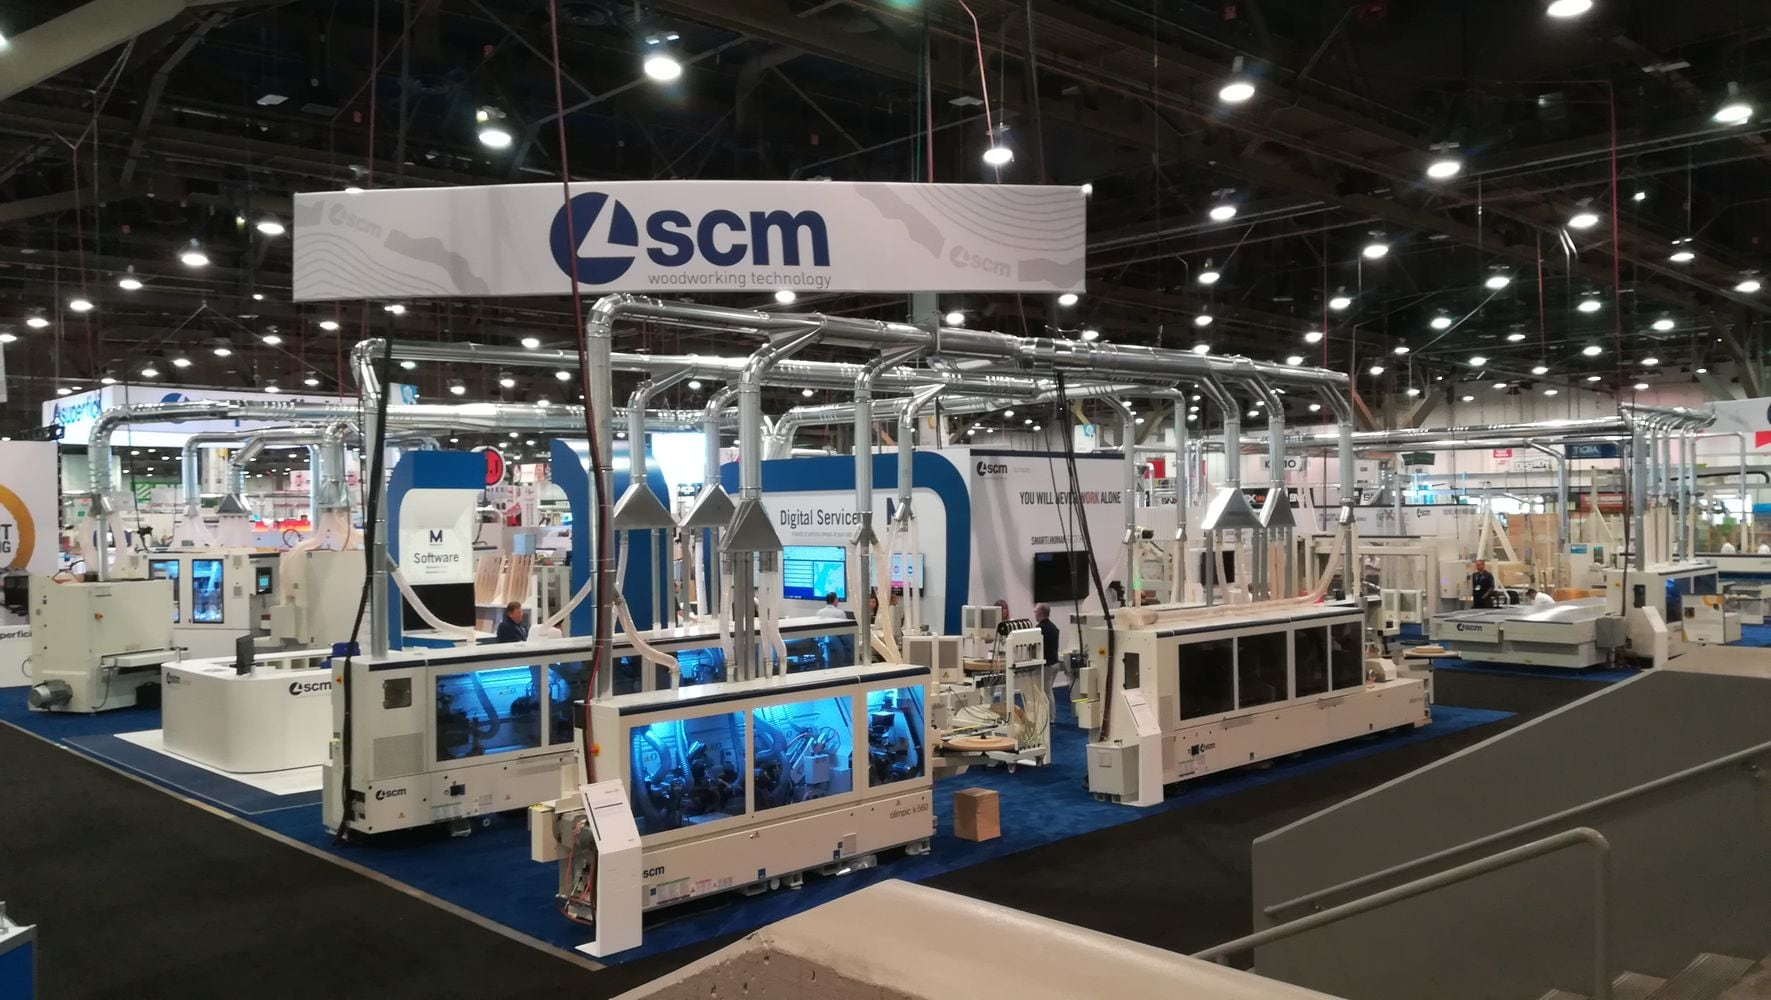 SCM takes centre stage at AWFS with its Smart&Human Factory